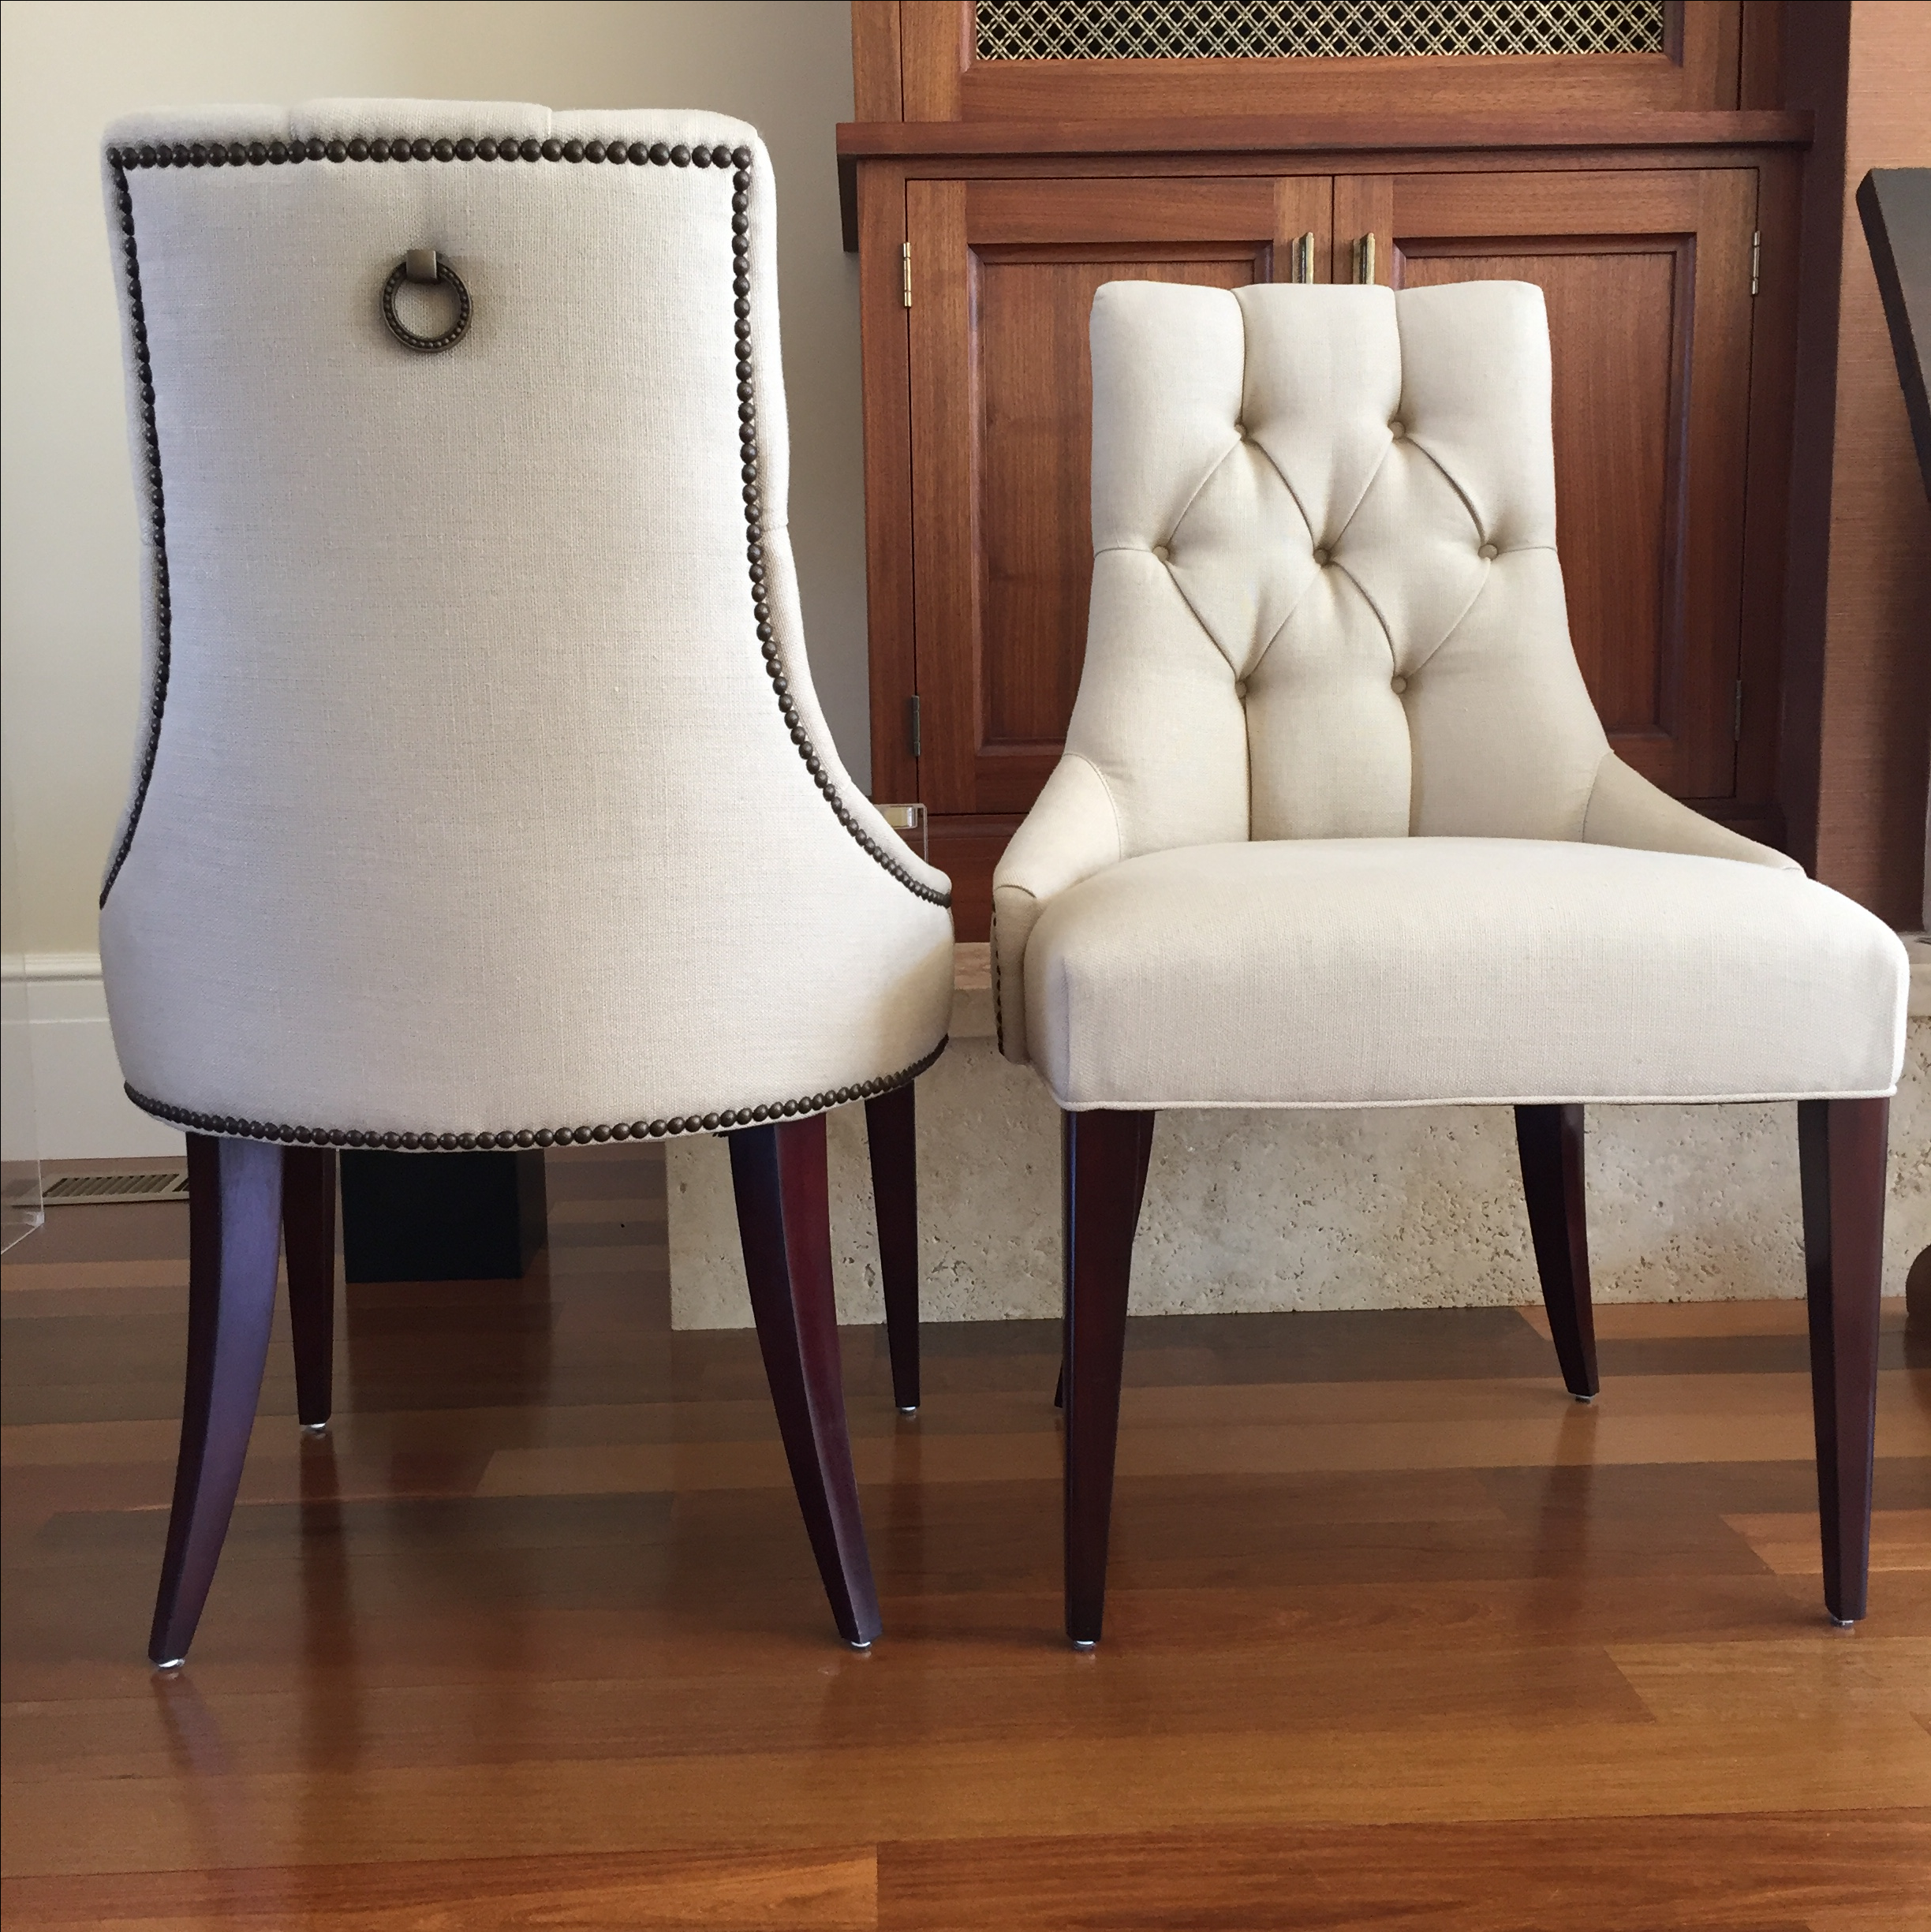 Thomas Pheasant Baker Dining Chairs a Pair